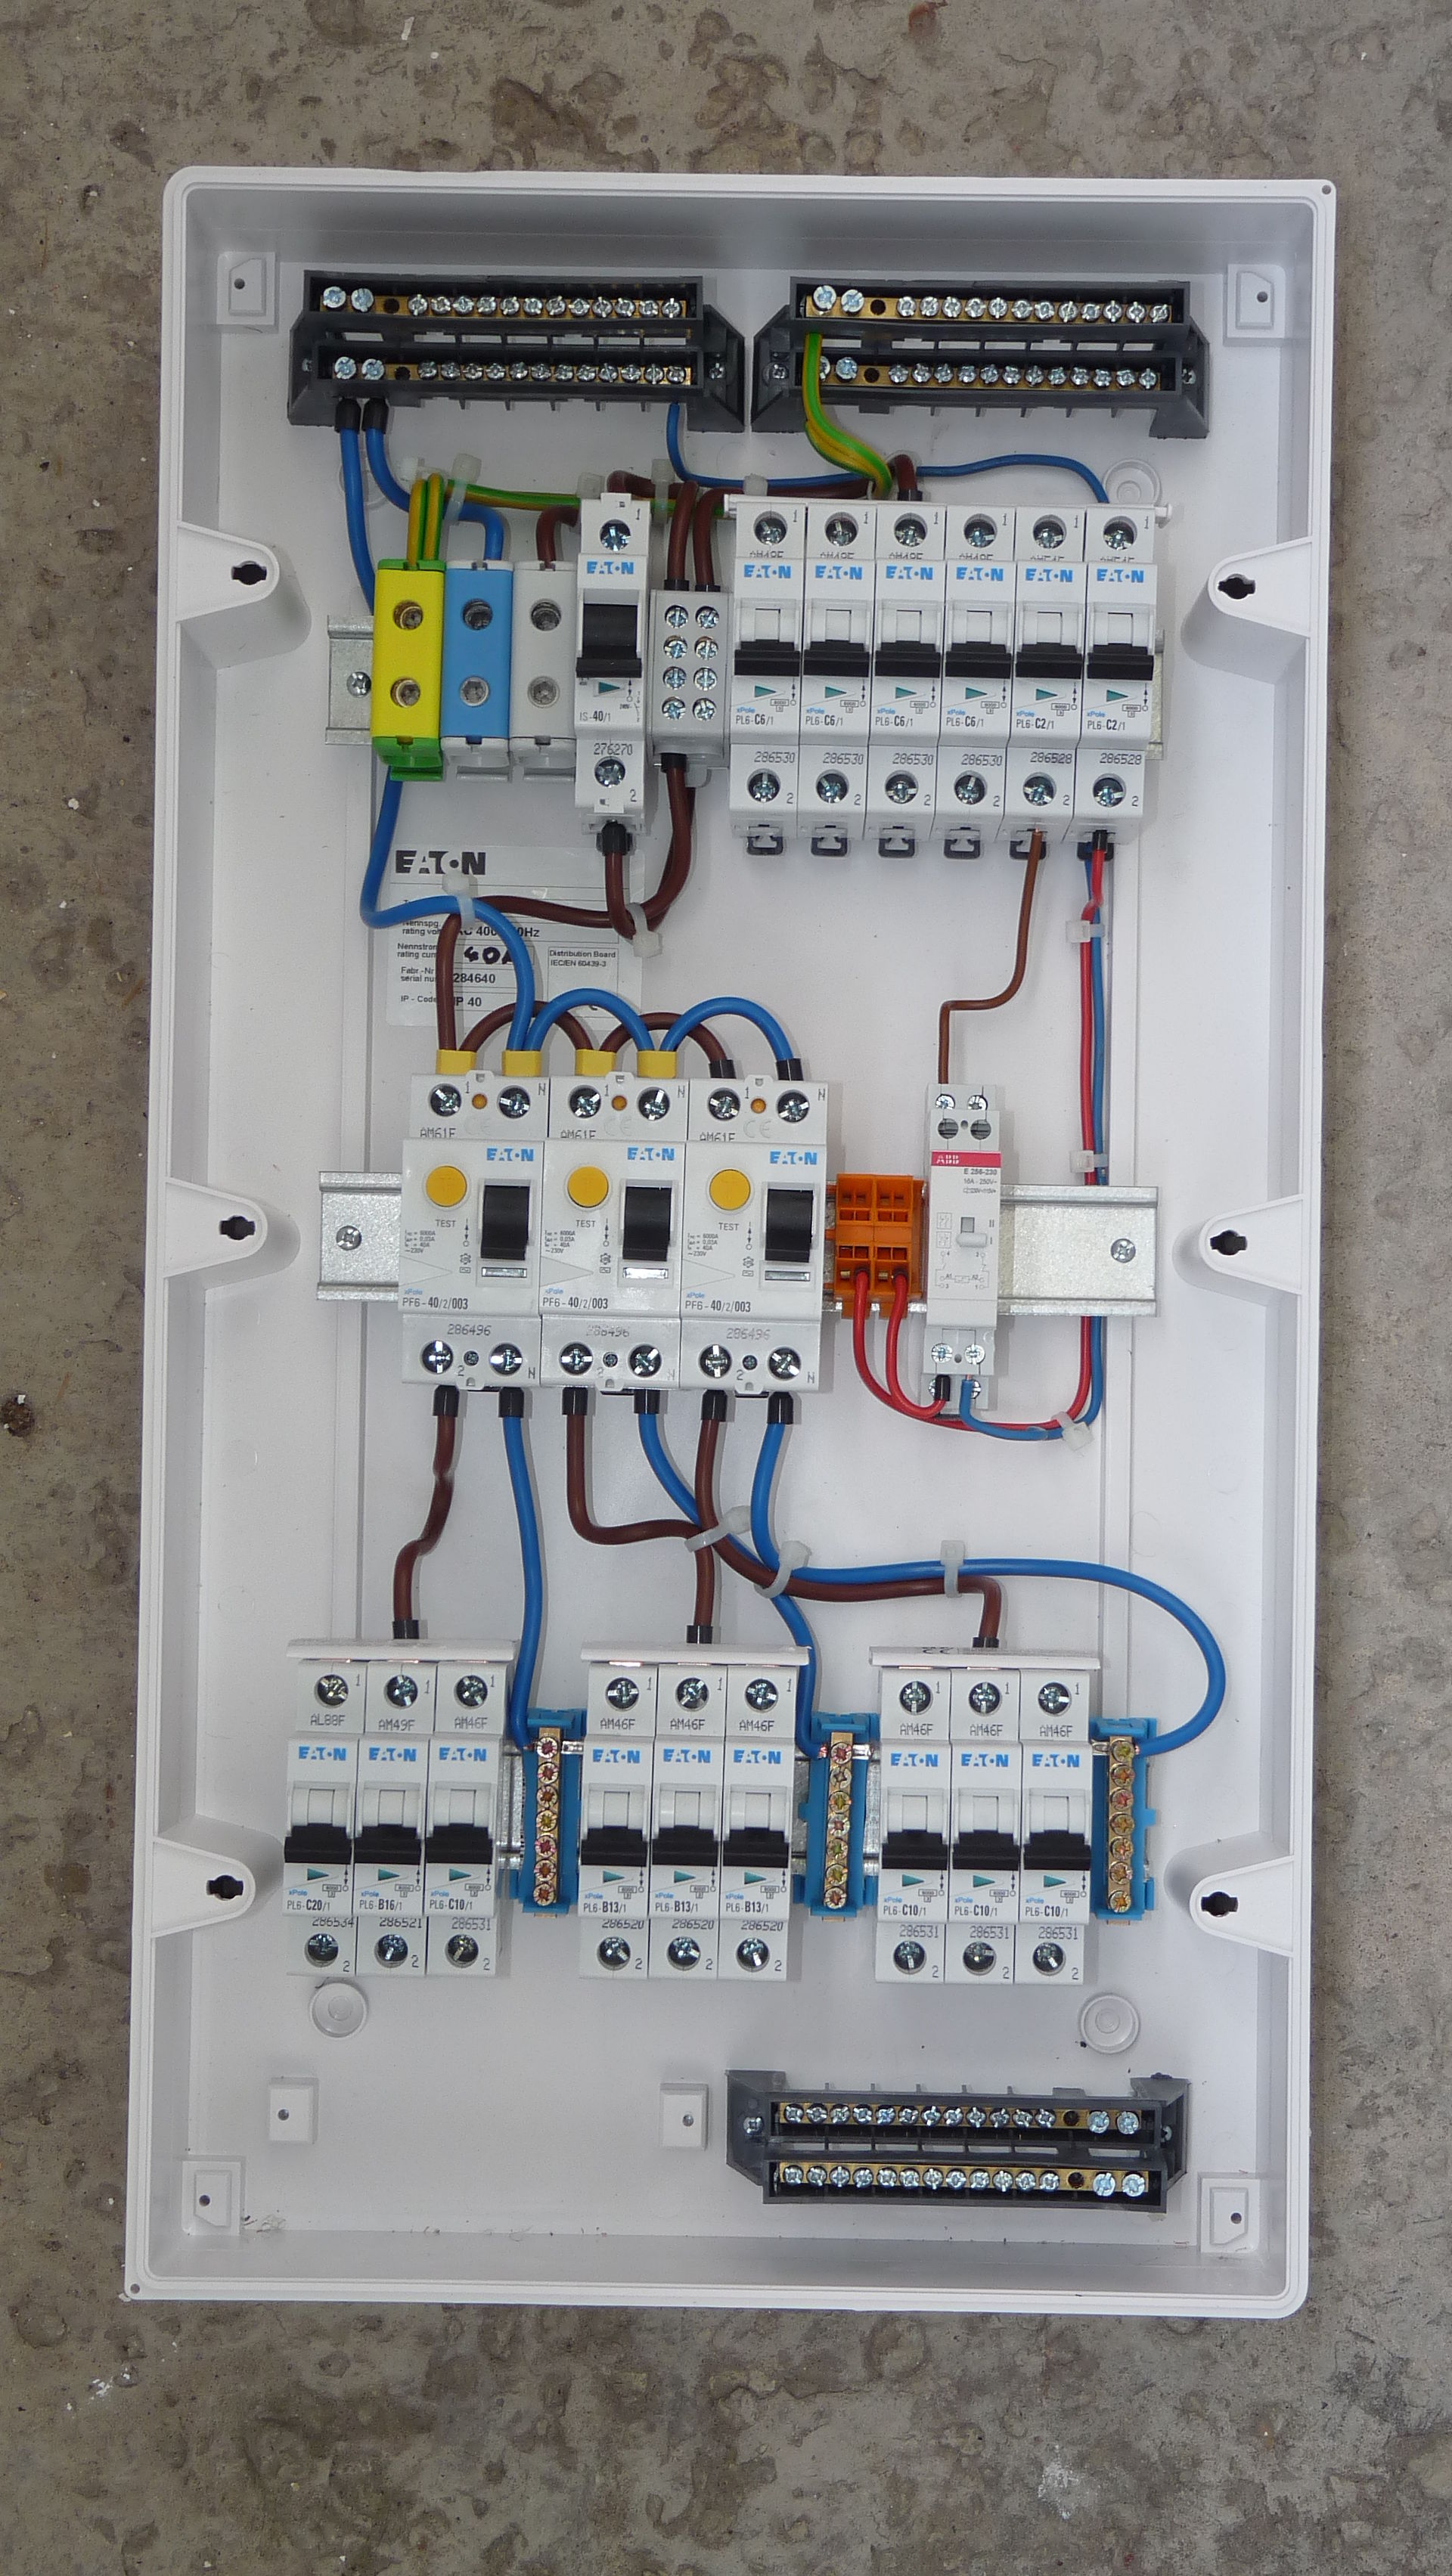 Adding Fuse To A Residential Box 37 Wiring Diagram Images How Circuit Breakers Work The Family Handyman 1920px Paekaare 24 Boxresize6652c1180